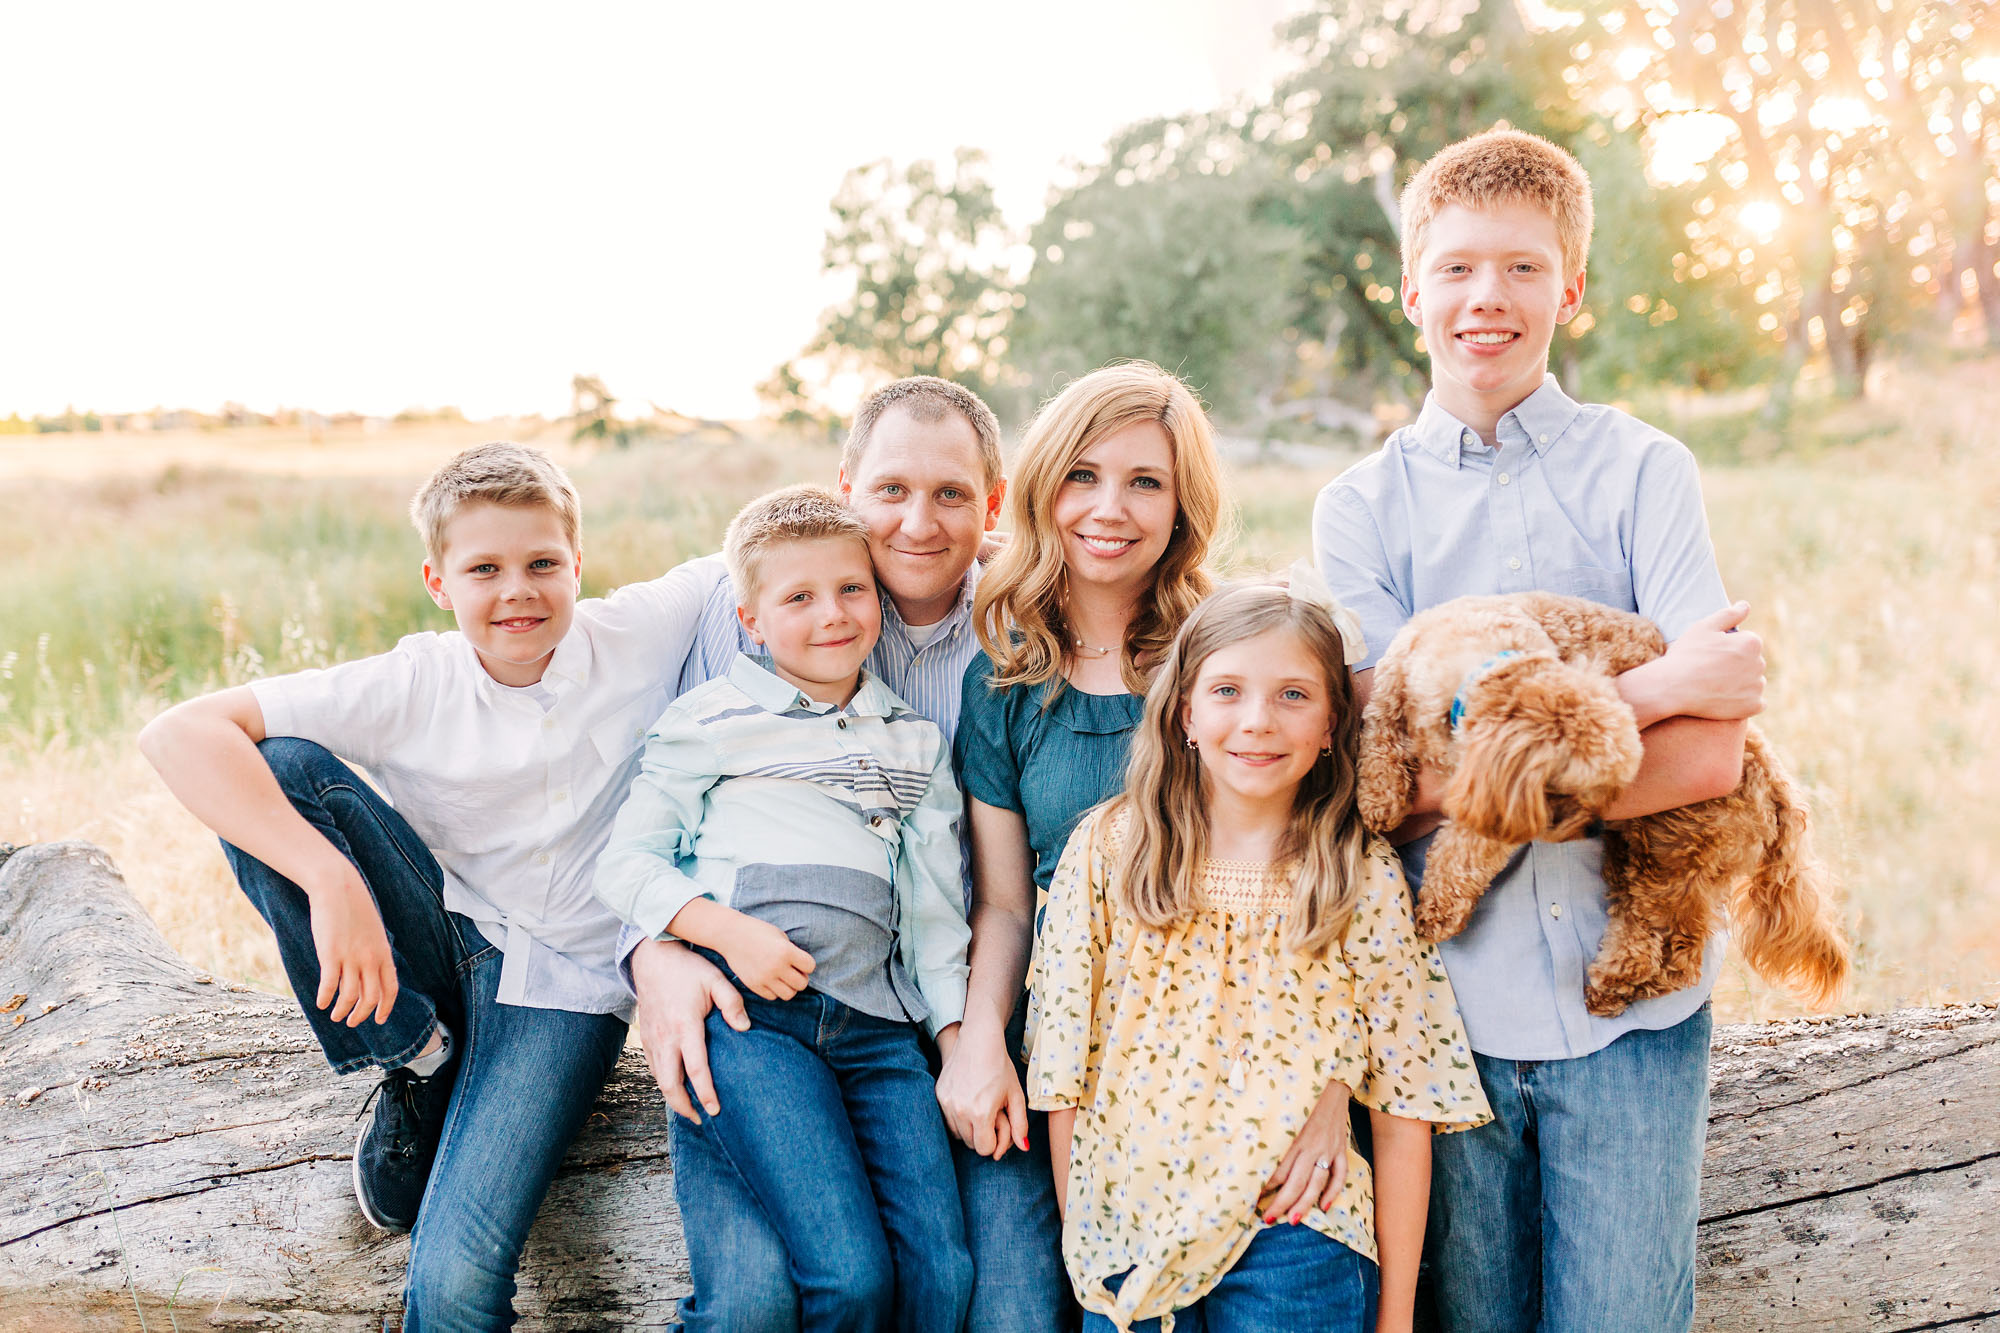 A family of six and their dog gather for a lifestyle photo session with photographer Amy Wright in Roseville, California.